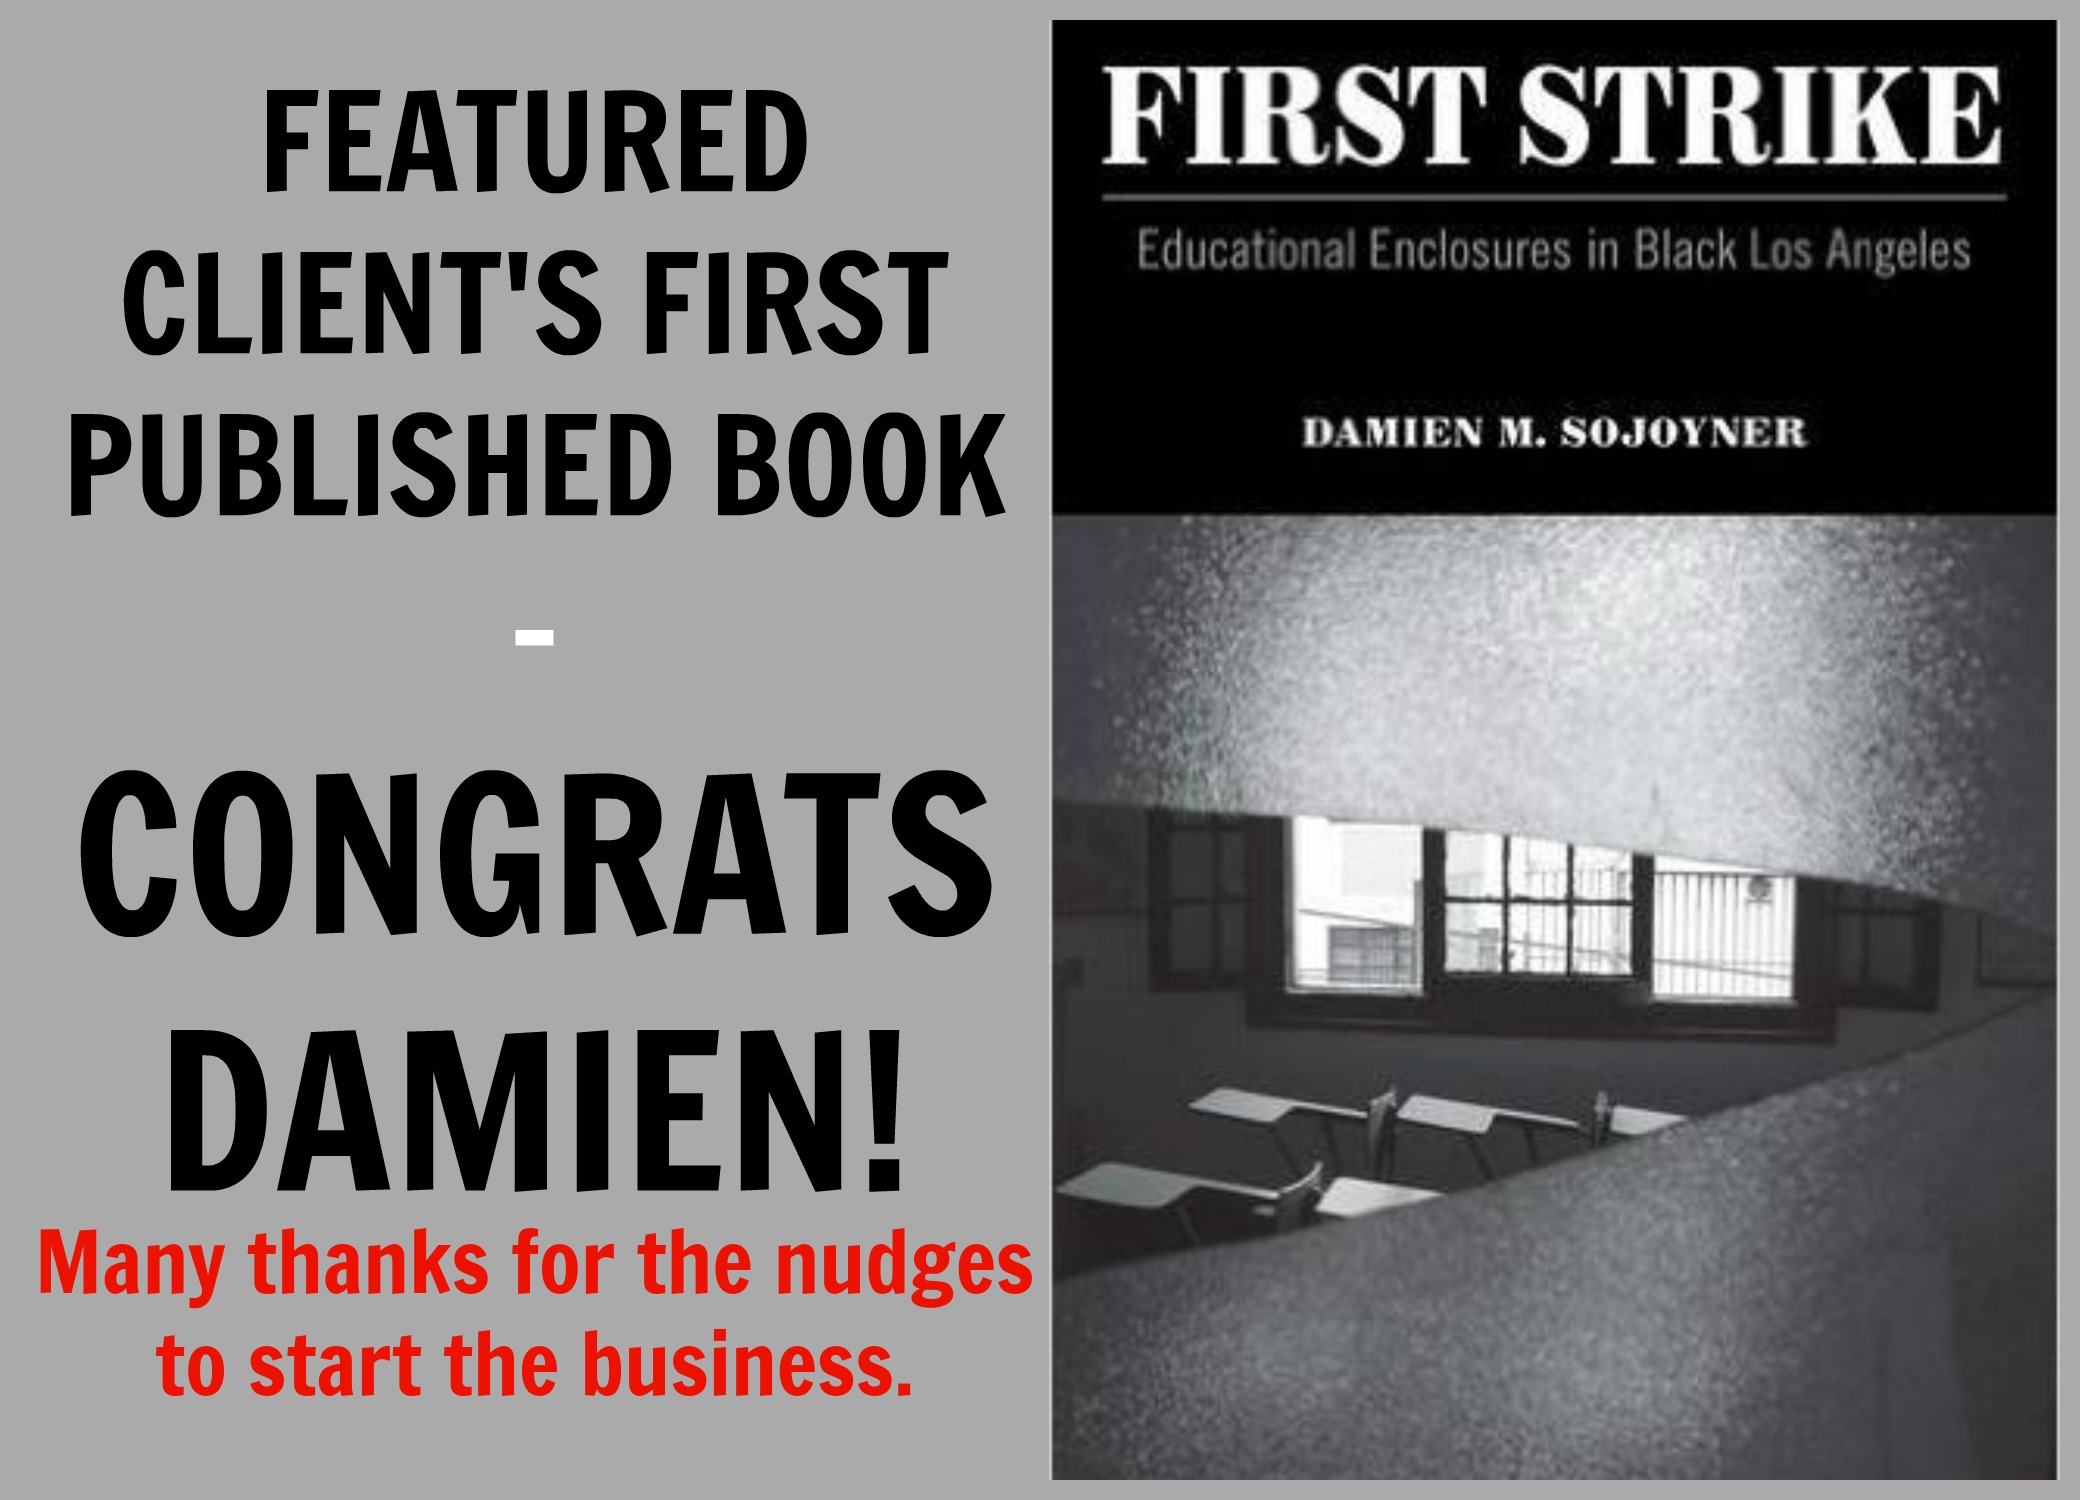 "FIRST STRIKE:   Educational Enclosures in Black Los Angeles   Author:  Damien Sojoyner   SYNOPSIS:   California is a state of immense contradictions.  Home to colossal wealth and long portrayed as a bastion of opportunity, it also has one of the largest prison populations in the United States and consistently ranks on the bottom of education indexes. Taking a unique, multifaceted insider's perspective,  First Strike  delves into the root causes of its ever-expansive prison system and disastrous educational policy.   Recentering analysis of Black masculinity beyond public rhetoric,  First Strike  critiques the trope of the ""school-to-prison pipeline"" and instead explores the realm of public school as a form of""enclosure"" that has influenced the schooling (and denial of schooling) and imprisonment of Black people in California. Through a fascinating ethnography of a public school in Los Angeles County, and a ""day in the life tour"" of the effect of prisons on the education of Black youth, Damien M. Sojoyner looks at the contestation over education in the Black community from Reconstruction to the civil rights and Black liberation movements of the past three decades.   Policy makers, school districts, and local governments have long known that there is a relationship between high incarceration rates and school failure.  First Strike  is the first book that demonstrates why that connection exists and shows how school districts, cities and states have been complicit and can reverse a disturbing and needless trend. Rather than rely upon state-sponsored ideological or policy-driven models that do nothing more than to maintain structures of hierarchal domination, it allows us to resituate our framework of understanding and begin looking for solutions in spaces that are readily available and are immersed in radically democratic social visions of the future.    Check it out."